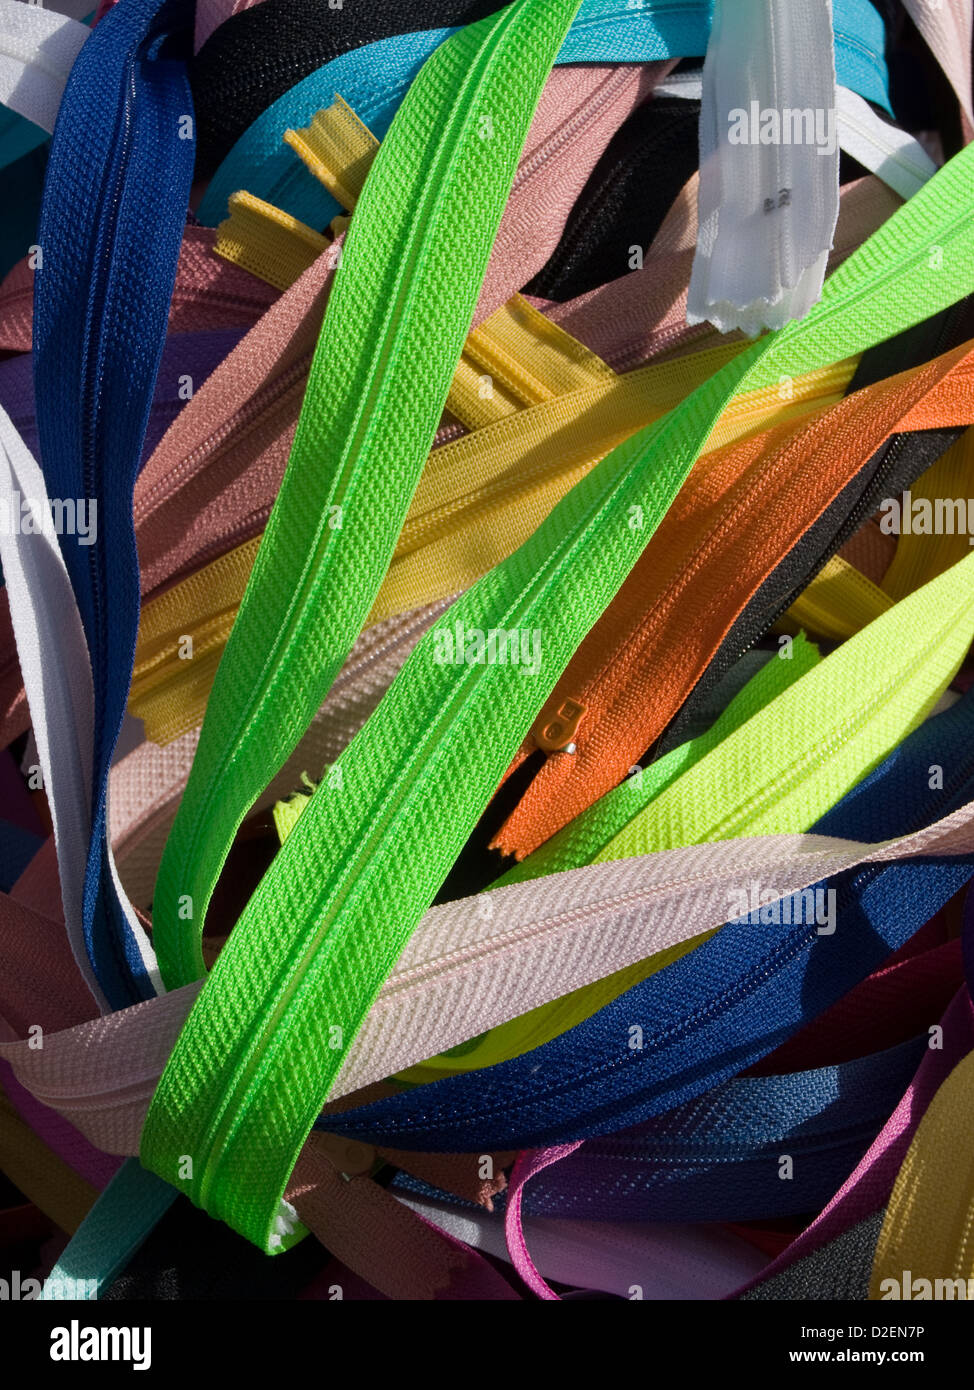 colored zippers - Stock Image